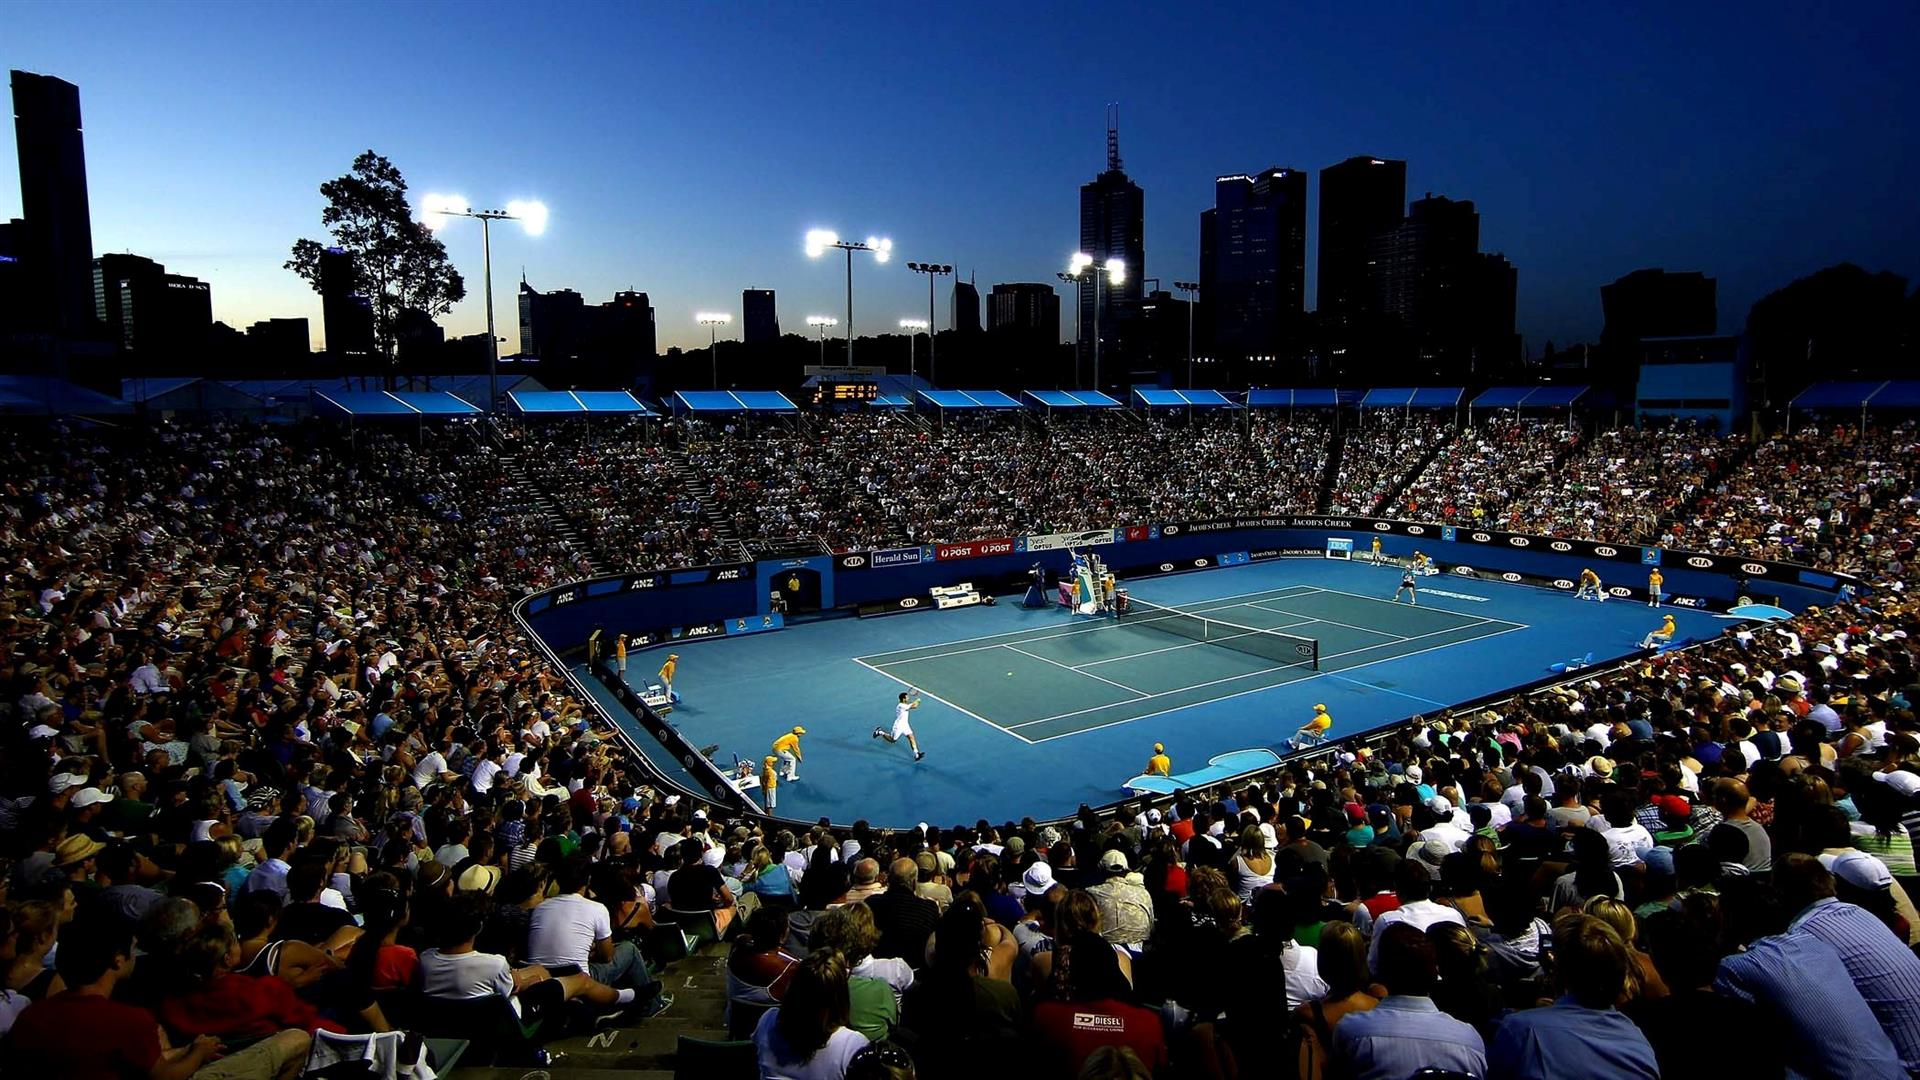 4k Wallpapers For Pc Cars Tennis Wallpapers High Quality Download Free